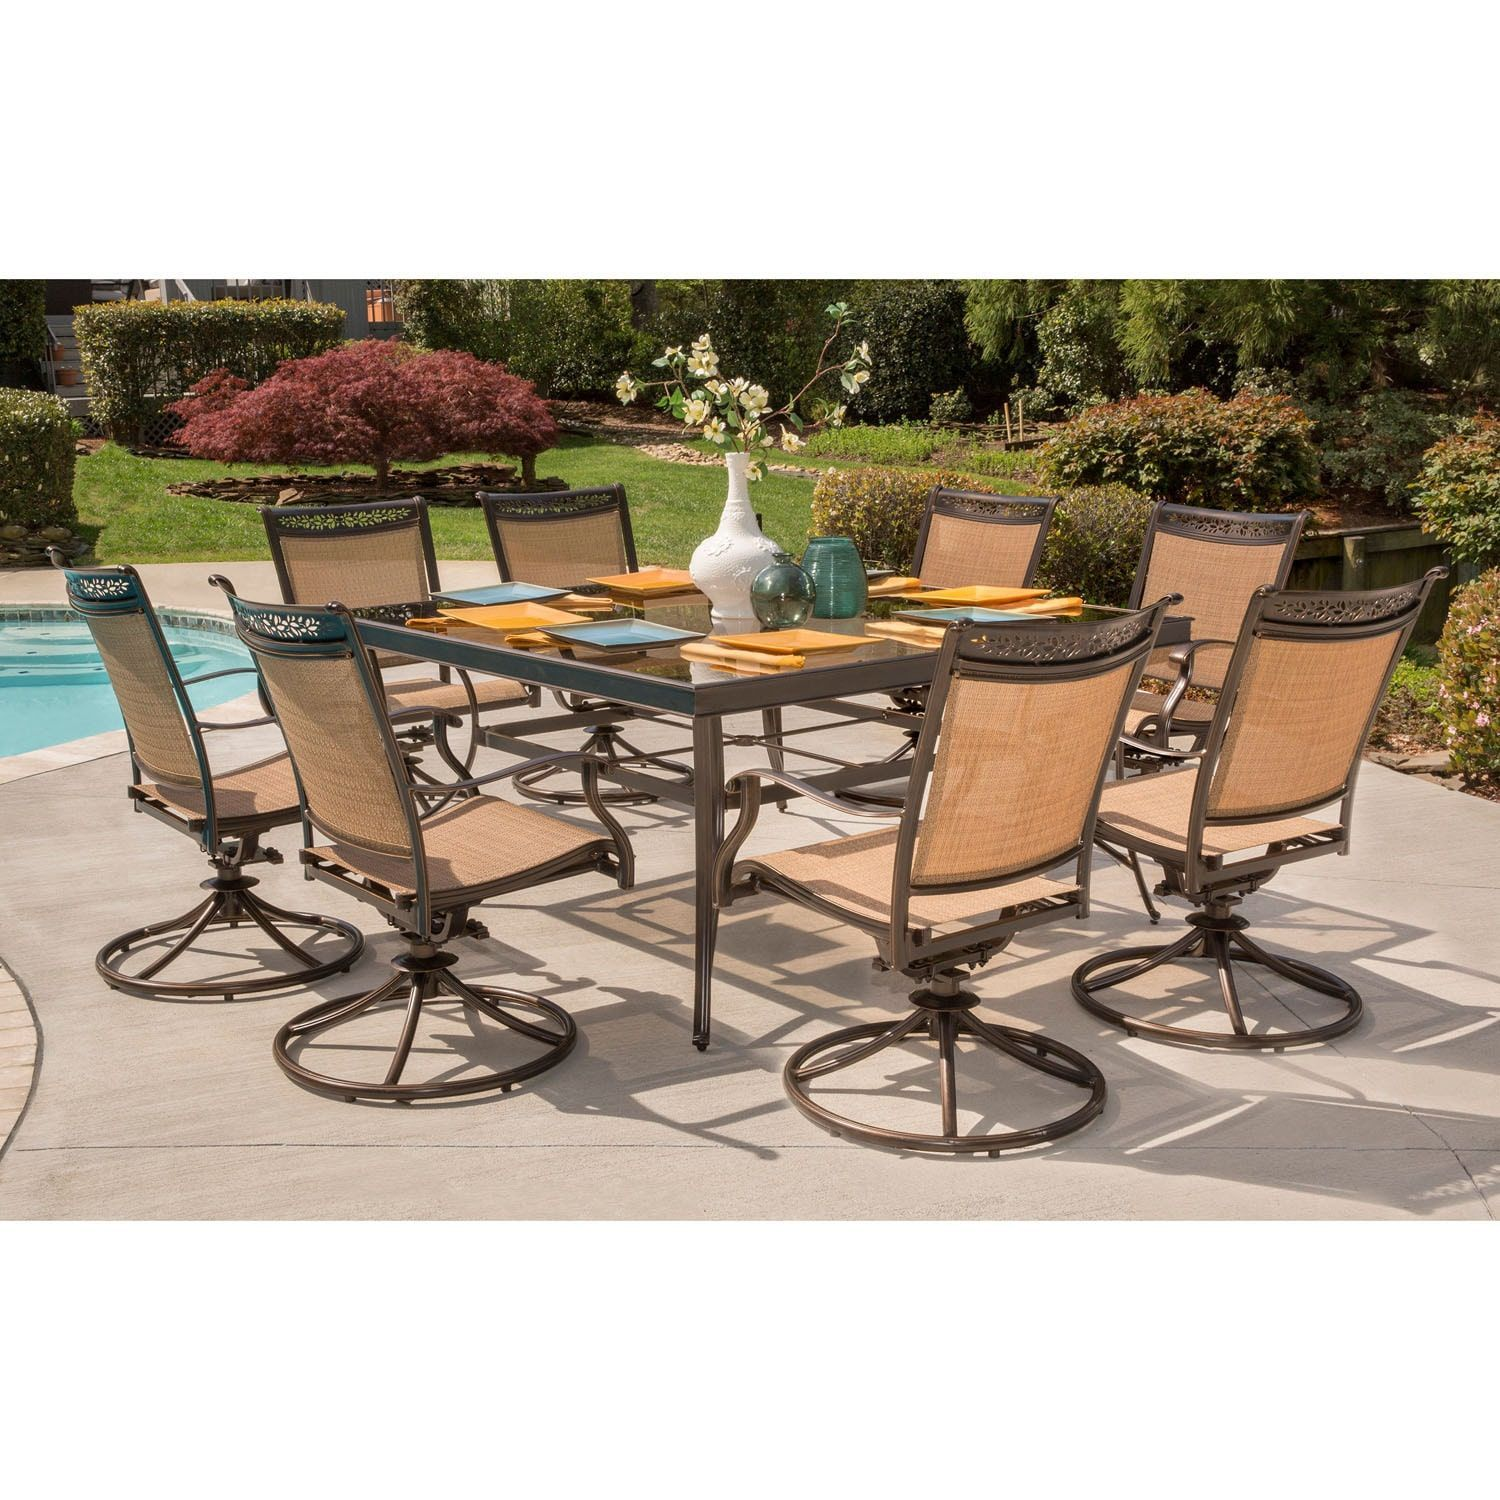 Hanover fontana 9 piece dining set with eight swivel rockers and a 60 in square dining table tan size 3 piece sets patio furniture aluminum